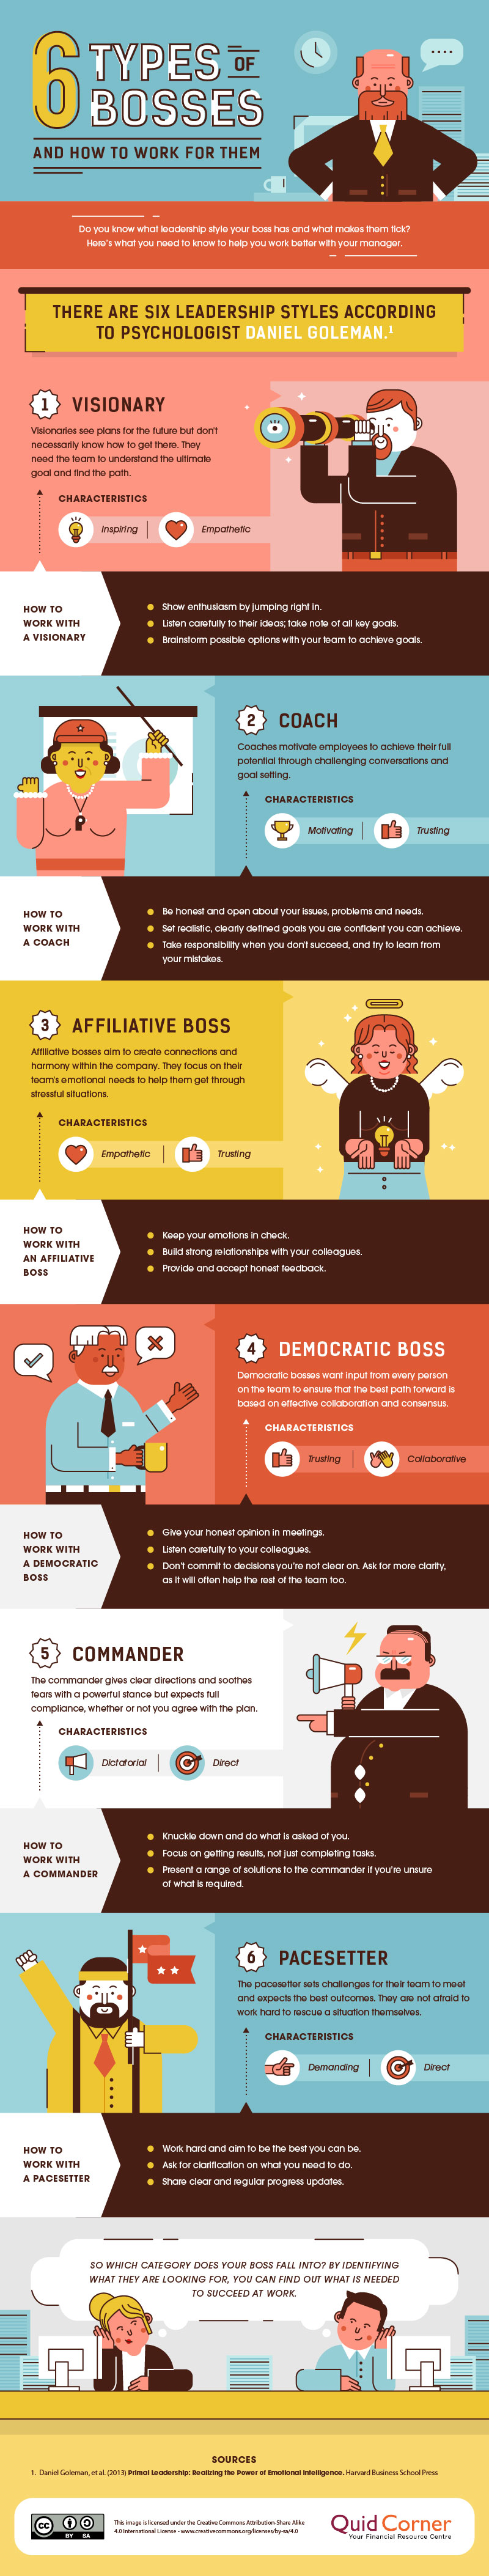 6 Types of Bosses (and How to Work for Them)